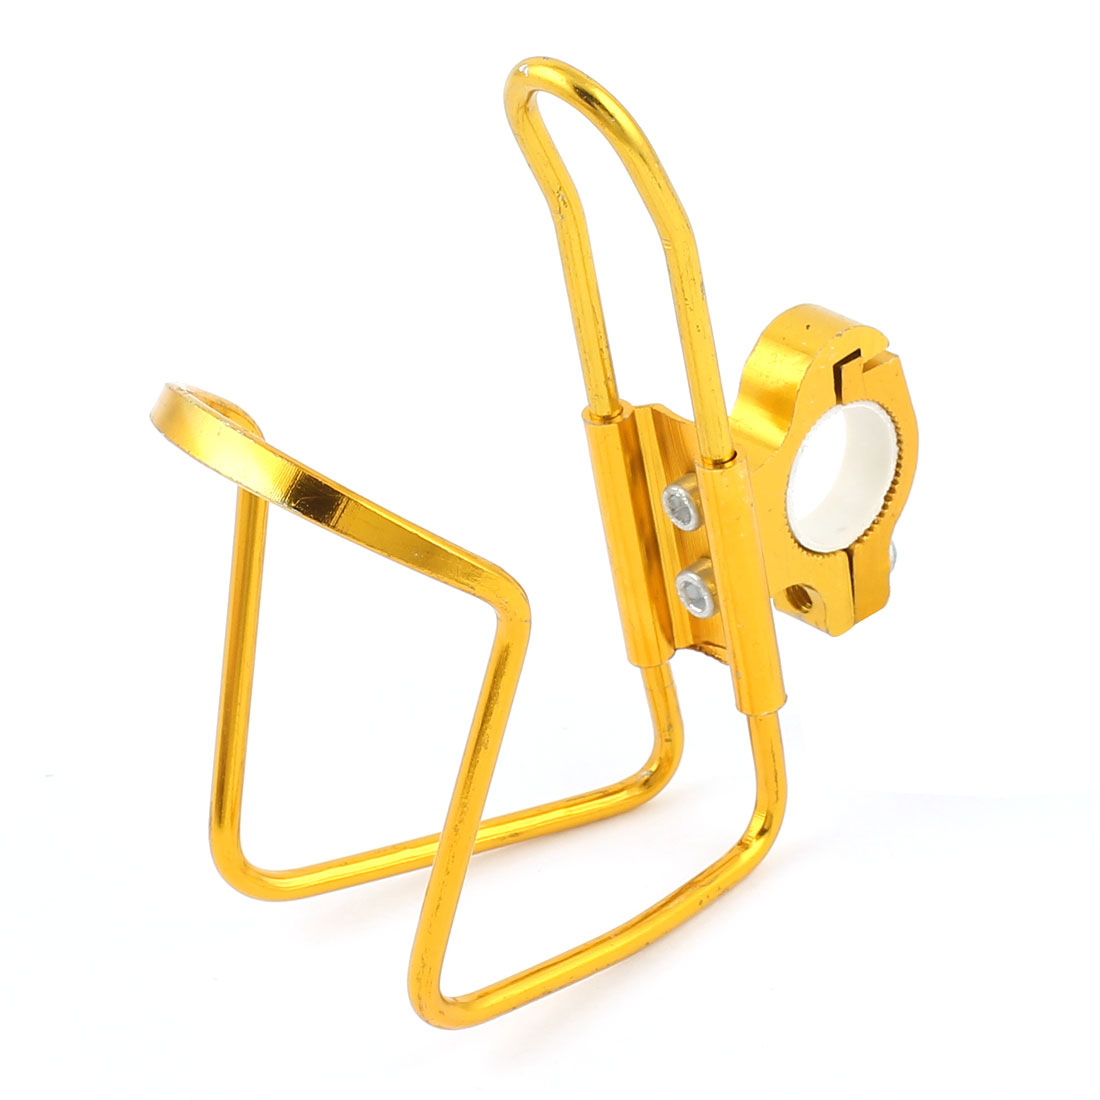 Bike Bicycle Metal Water Drinking Bottle Holder Cage Rack Gold Tone